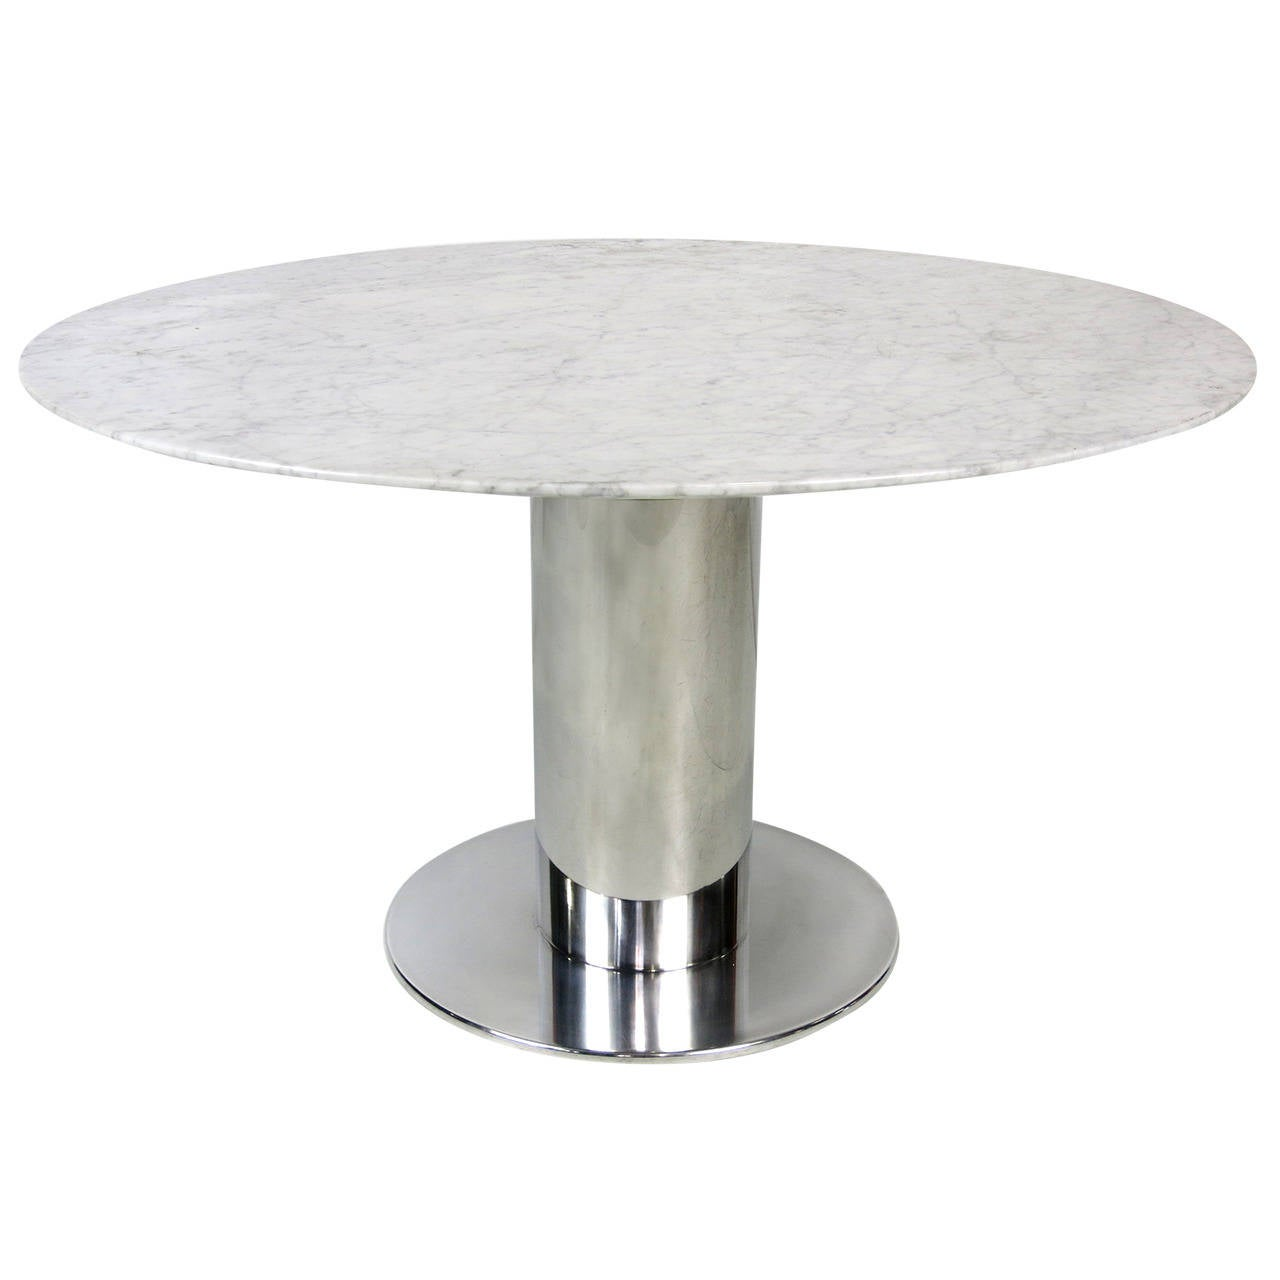 Polished stainless steel dining table base for sale at 1stdibs Metal table base